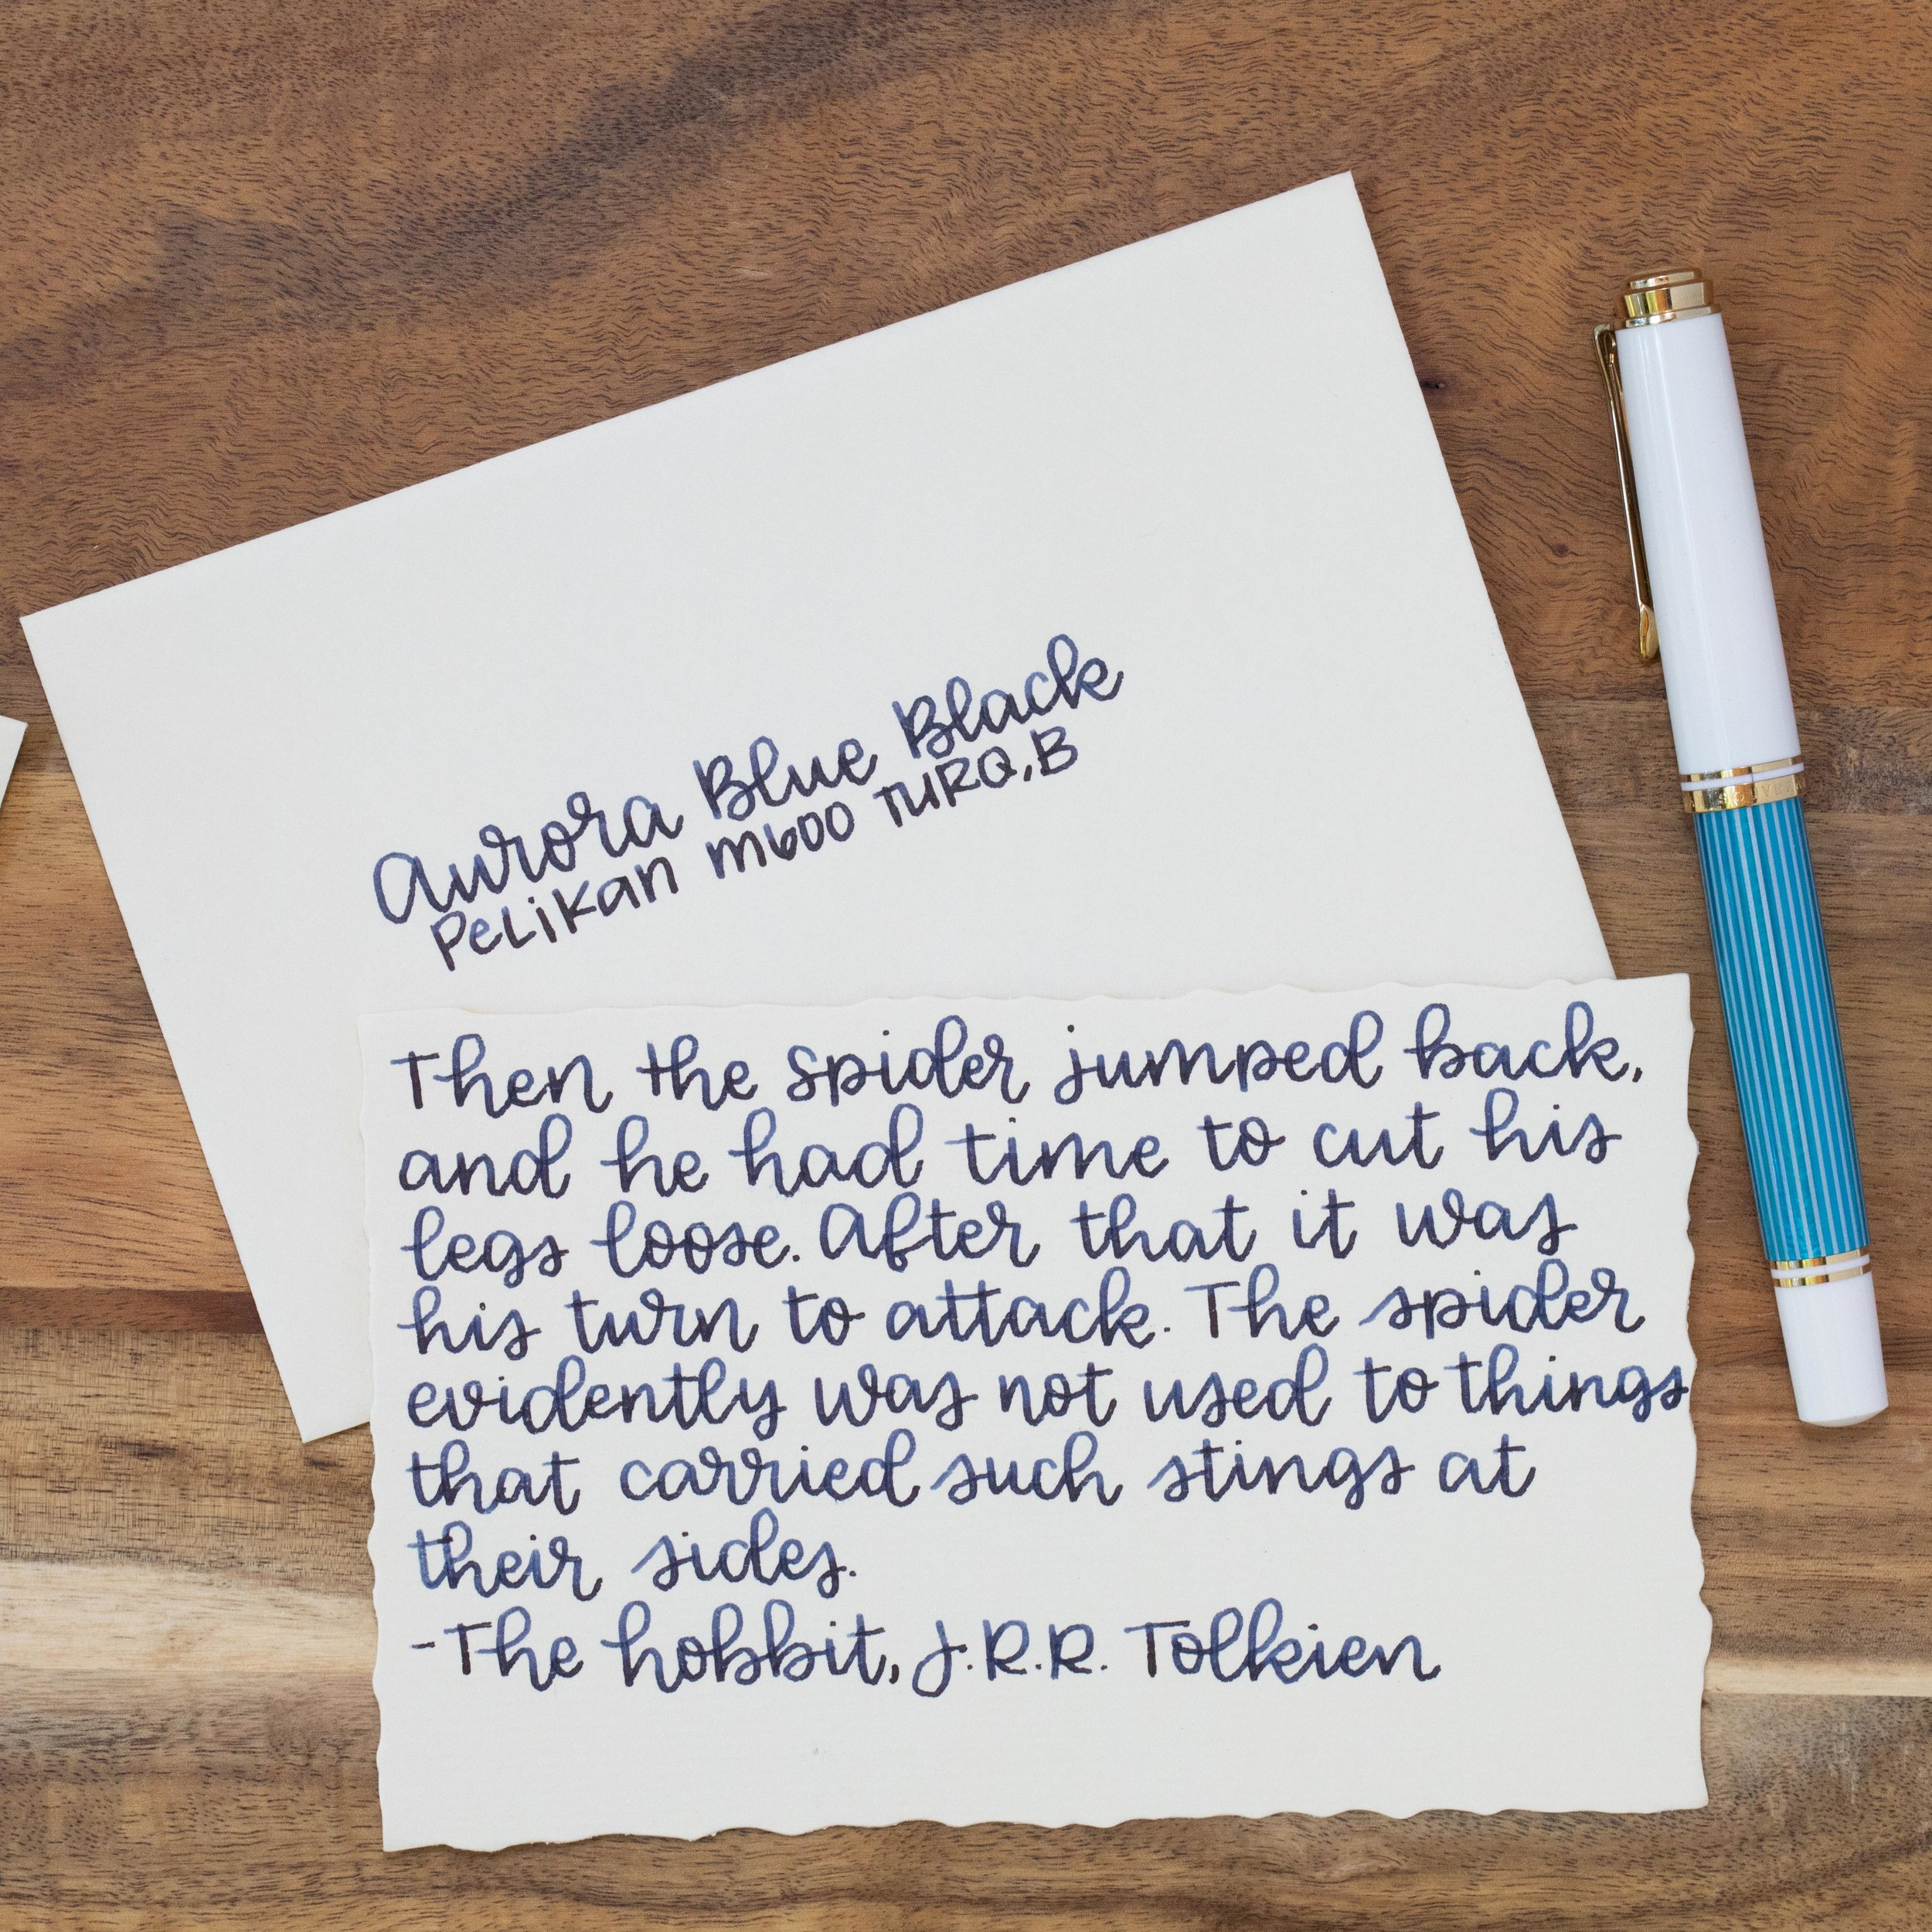 I used a broad Pelikan M600 Turquoise on G. Lalo stationery. The ink had an average flow.